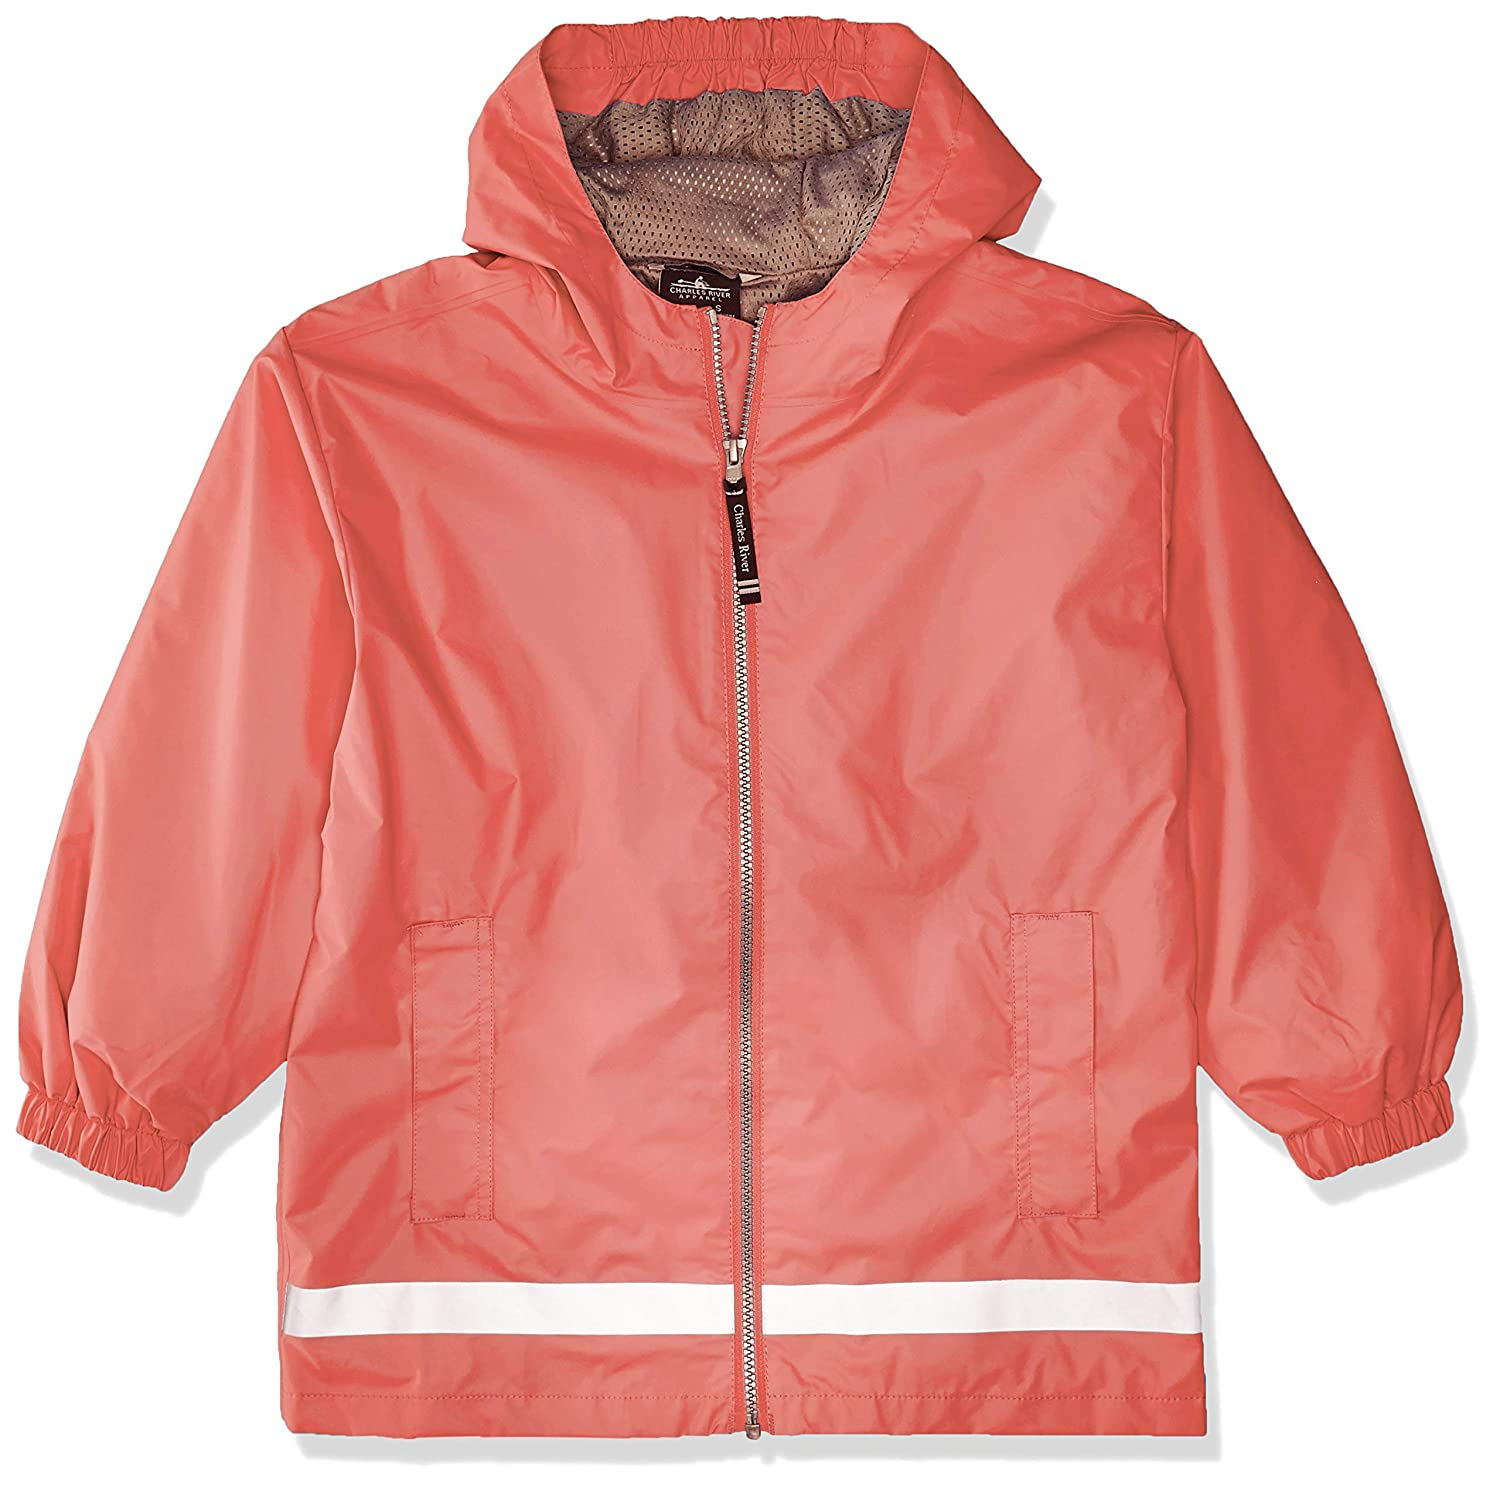 Charles River Apparel Kids' New Englander Rain Jacket